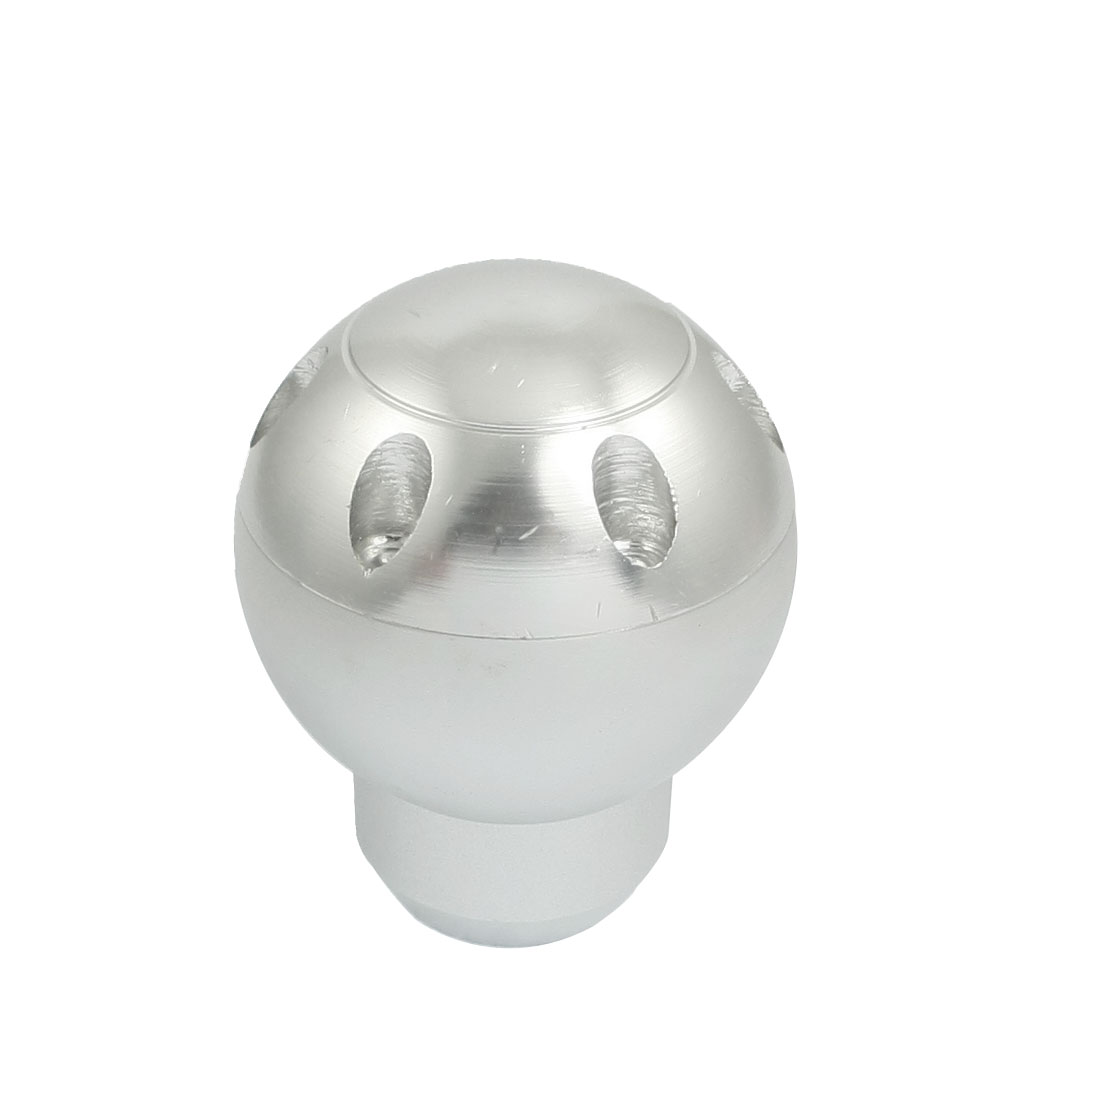 Silver Tone Round Head Gear Shift Knob Handle for Auto Car